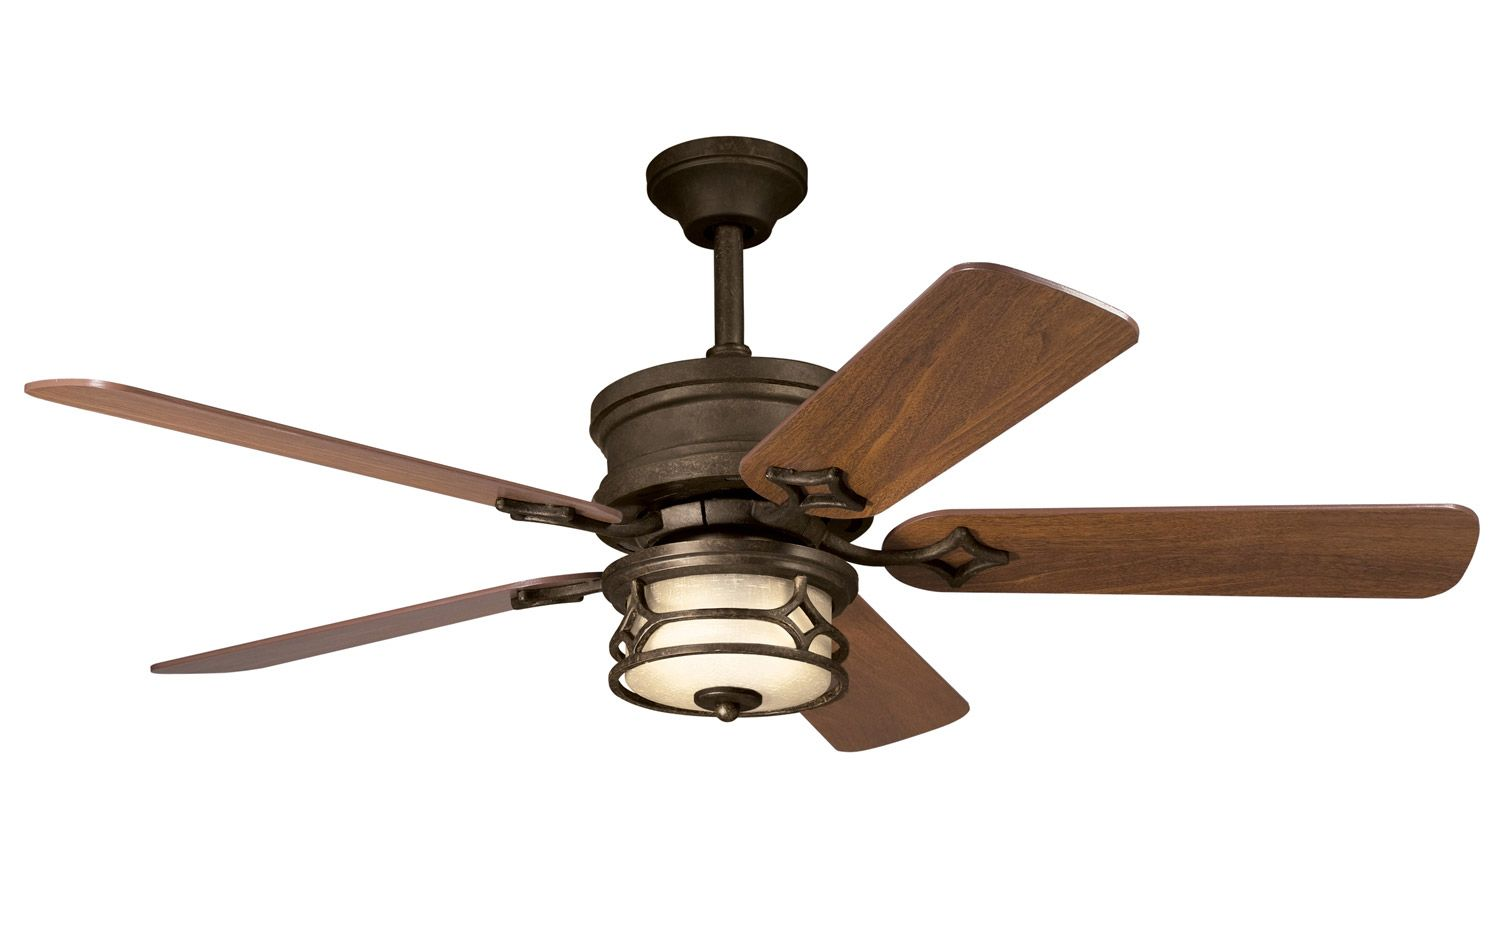 tiffany style ceiling fans   Craftsman Mission Chicago Ceiling Fan     tiffany style ceiling fans   Craftsman Mission Chicago Ceiling Fan    Kichler 300001AGZ